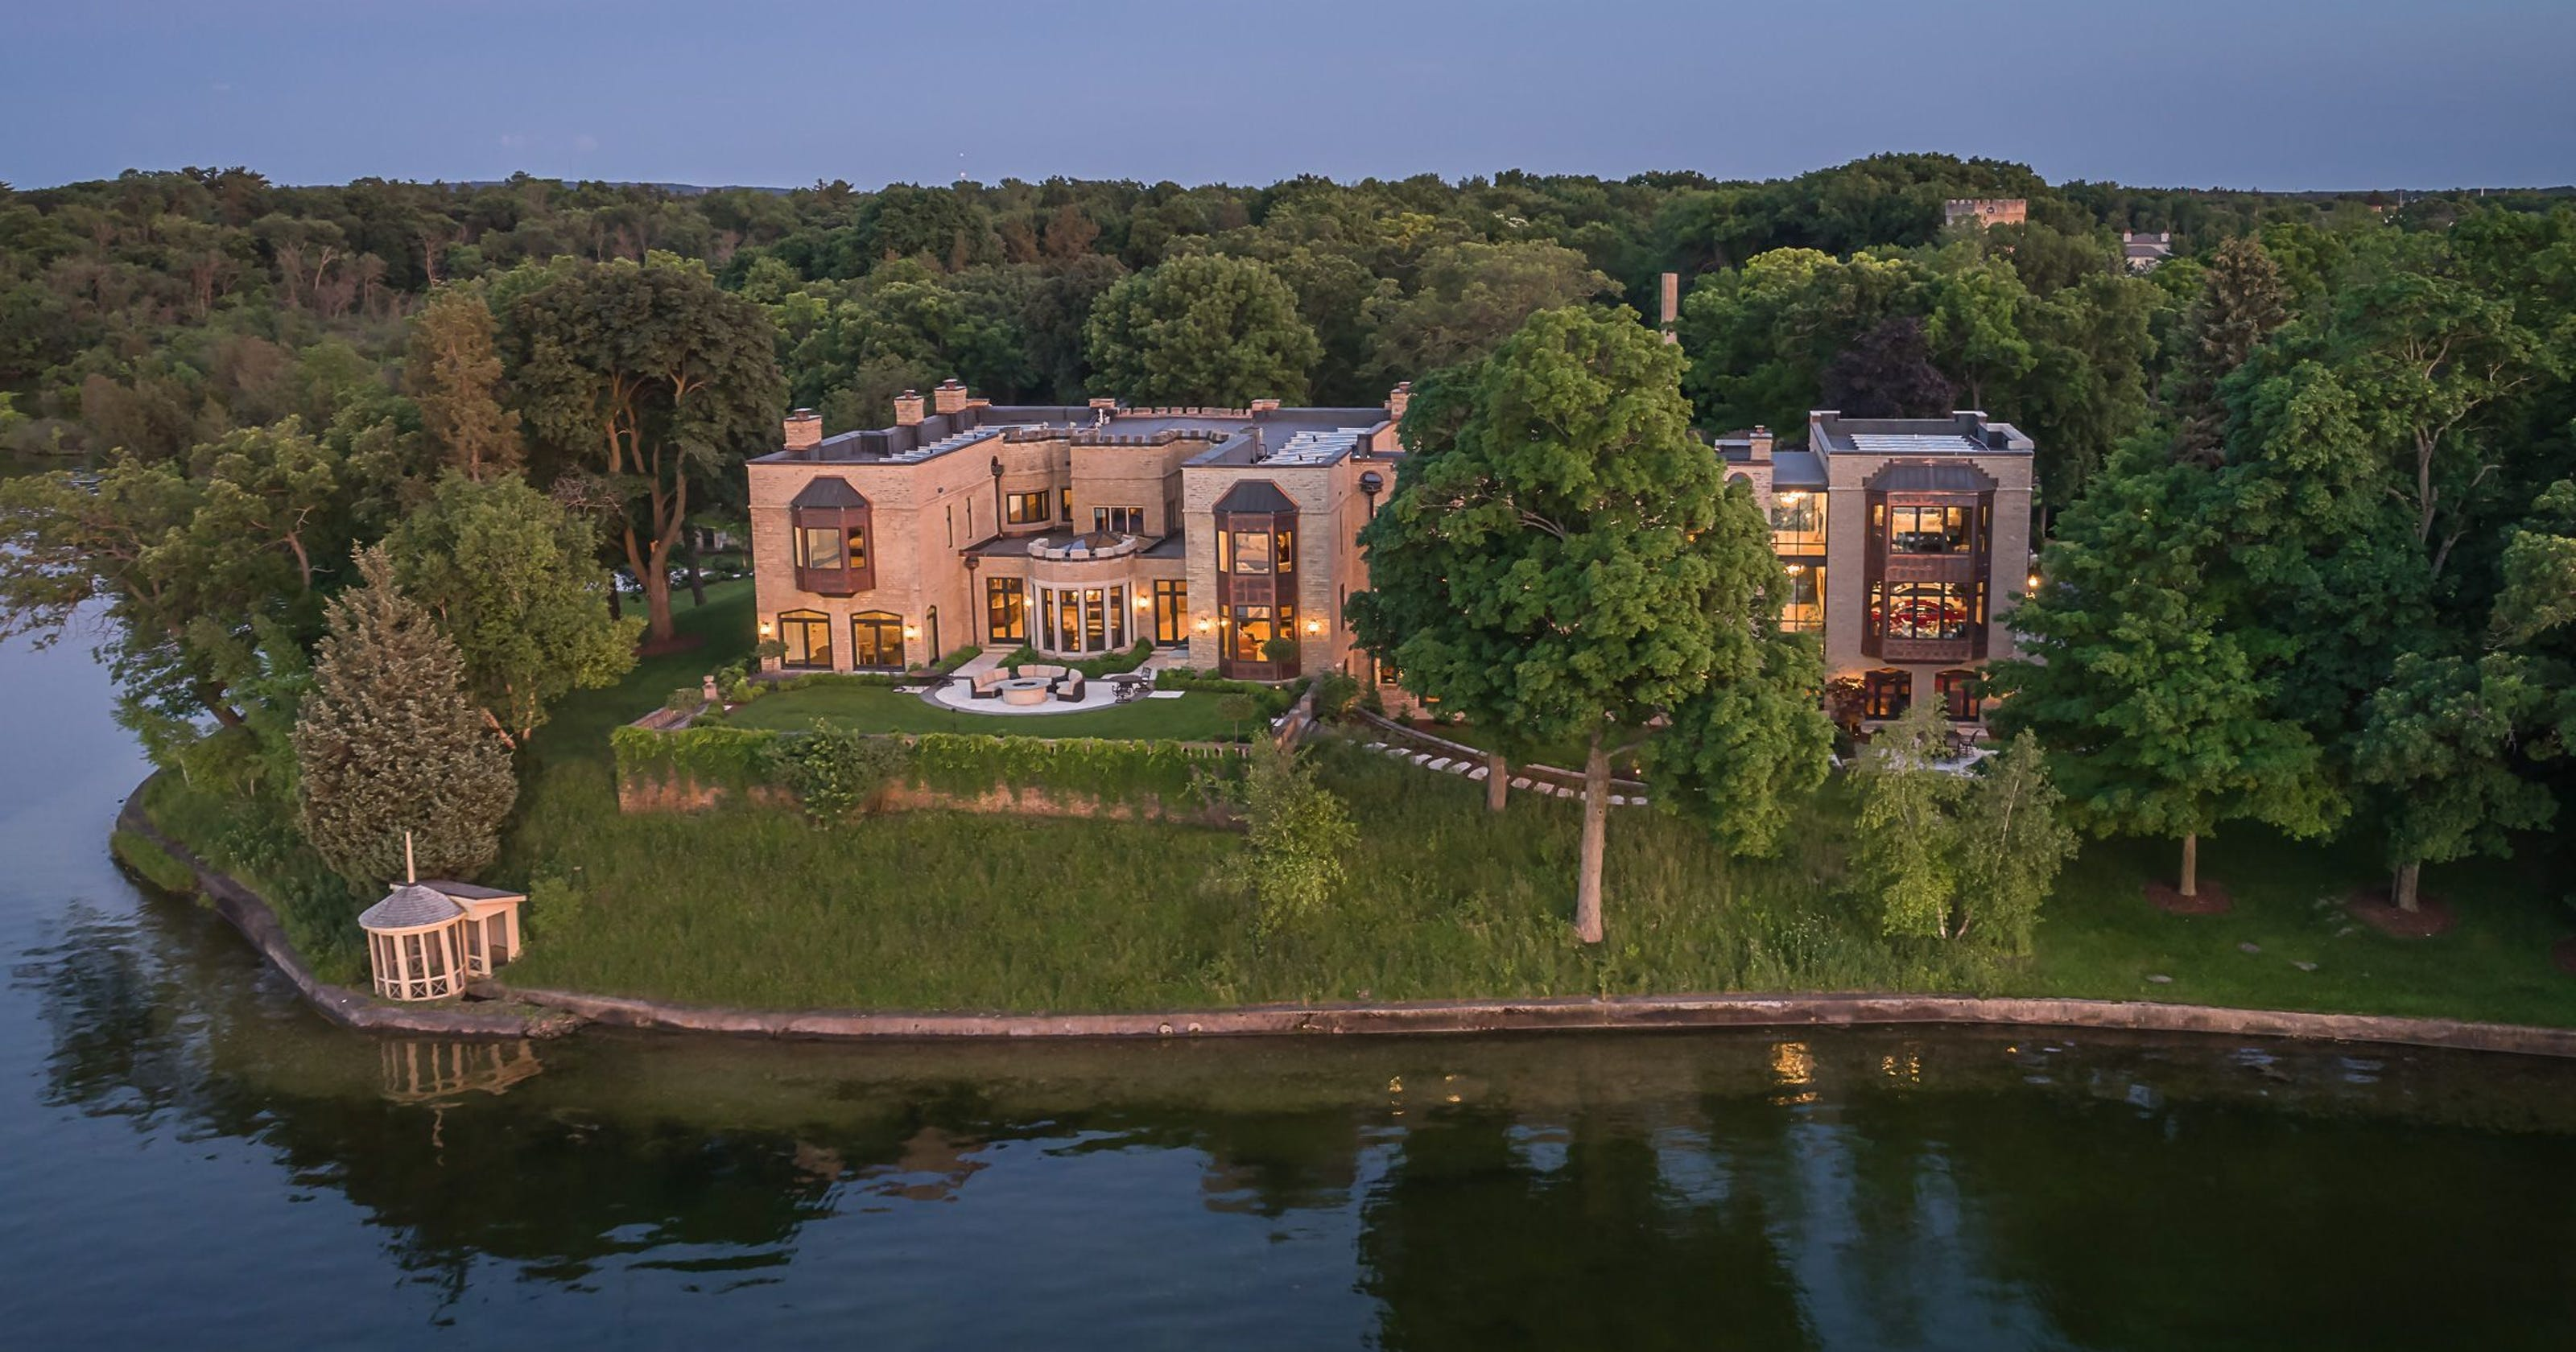 Oconomowoc mansion, headless body top stories in Lake Country in 2017